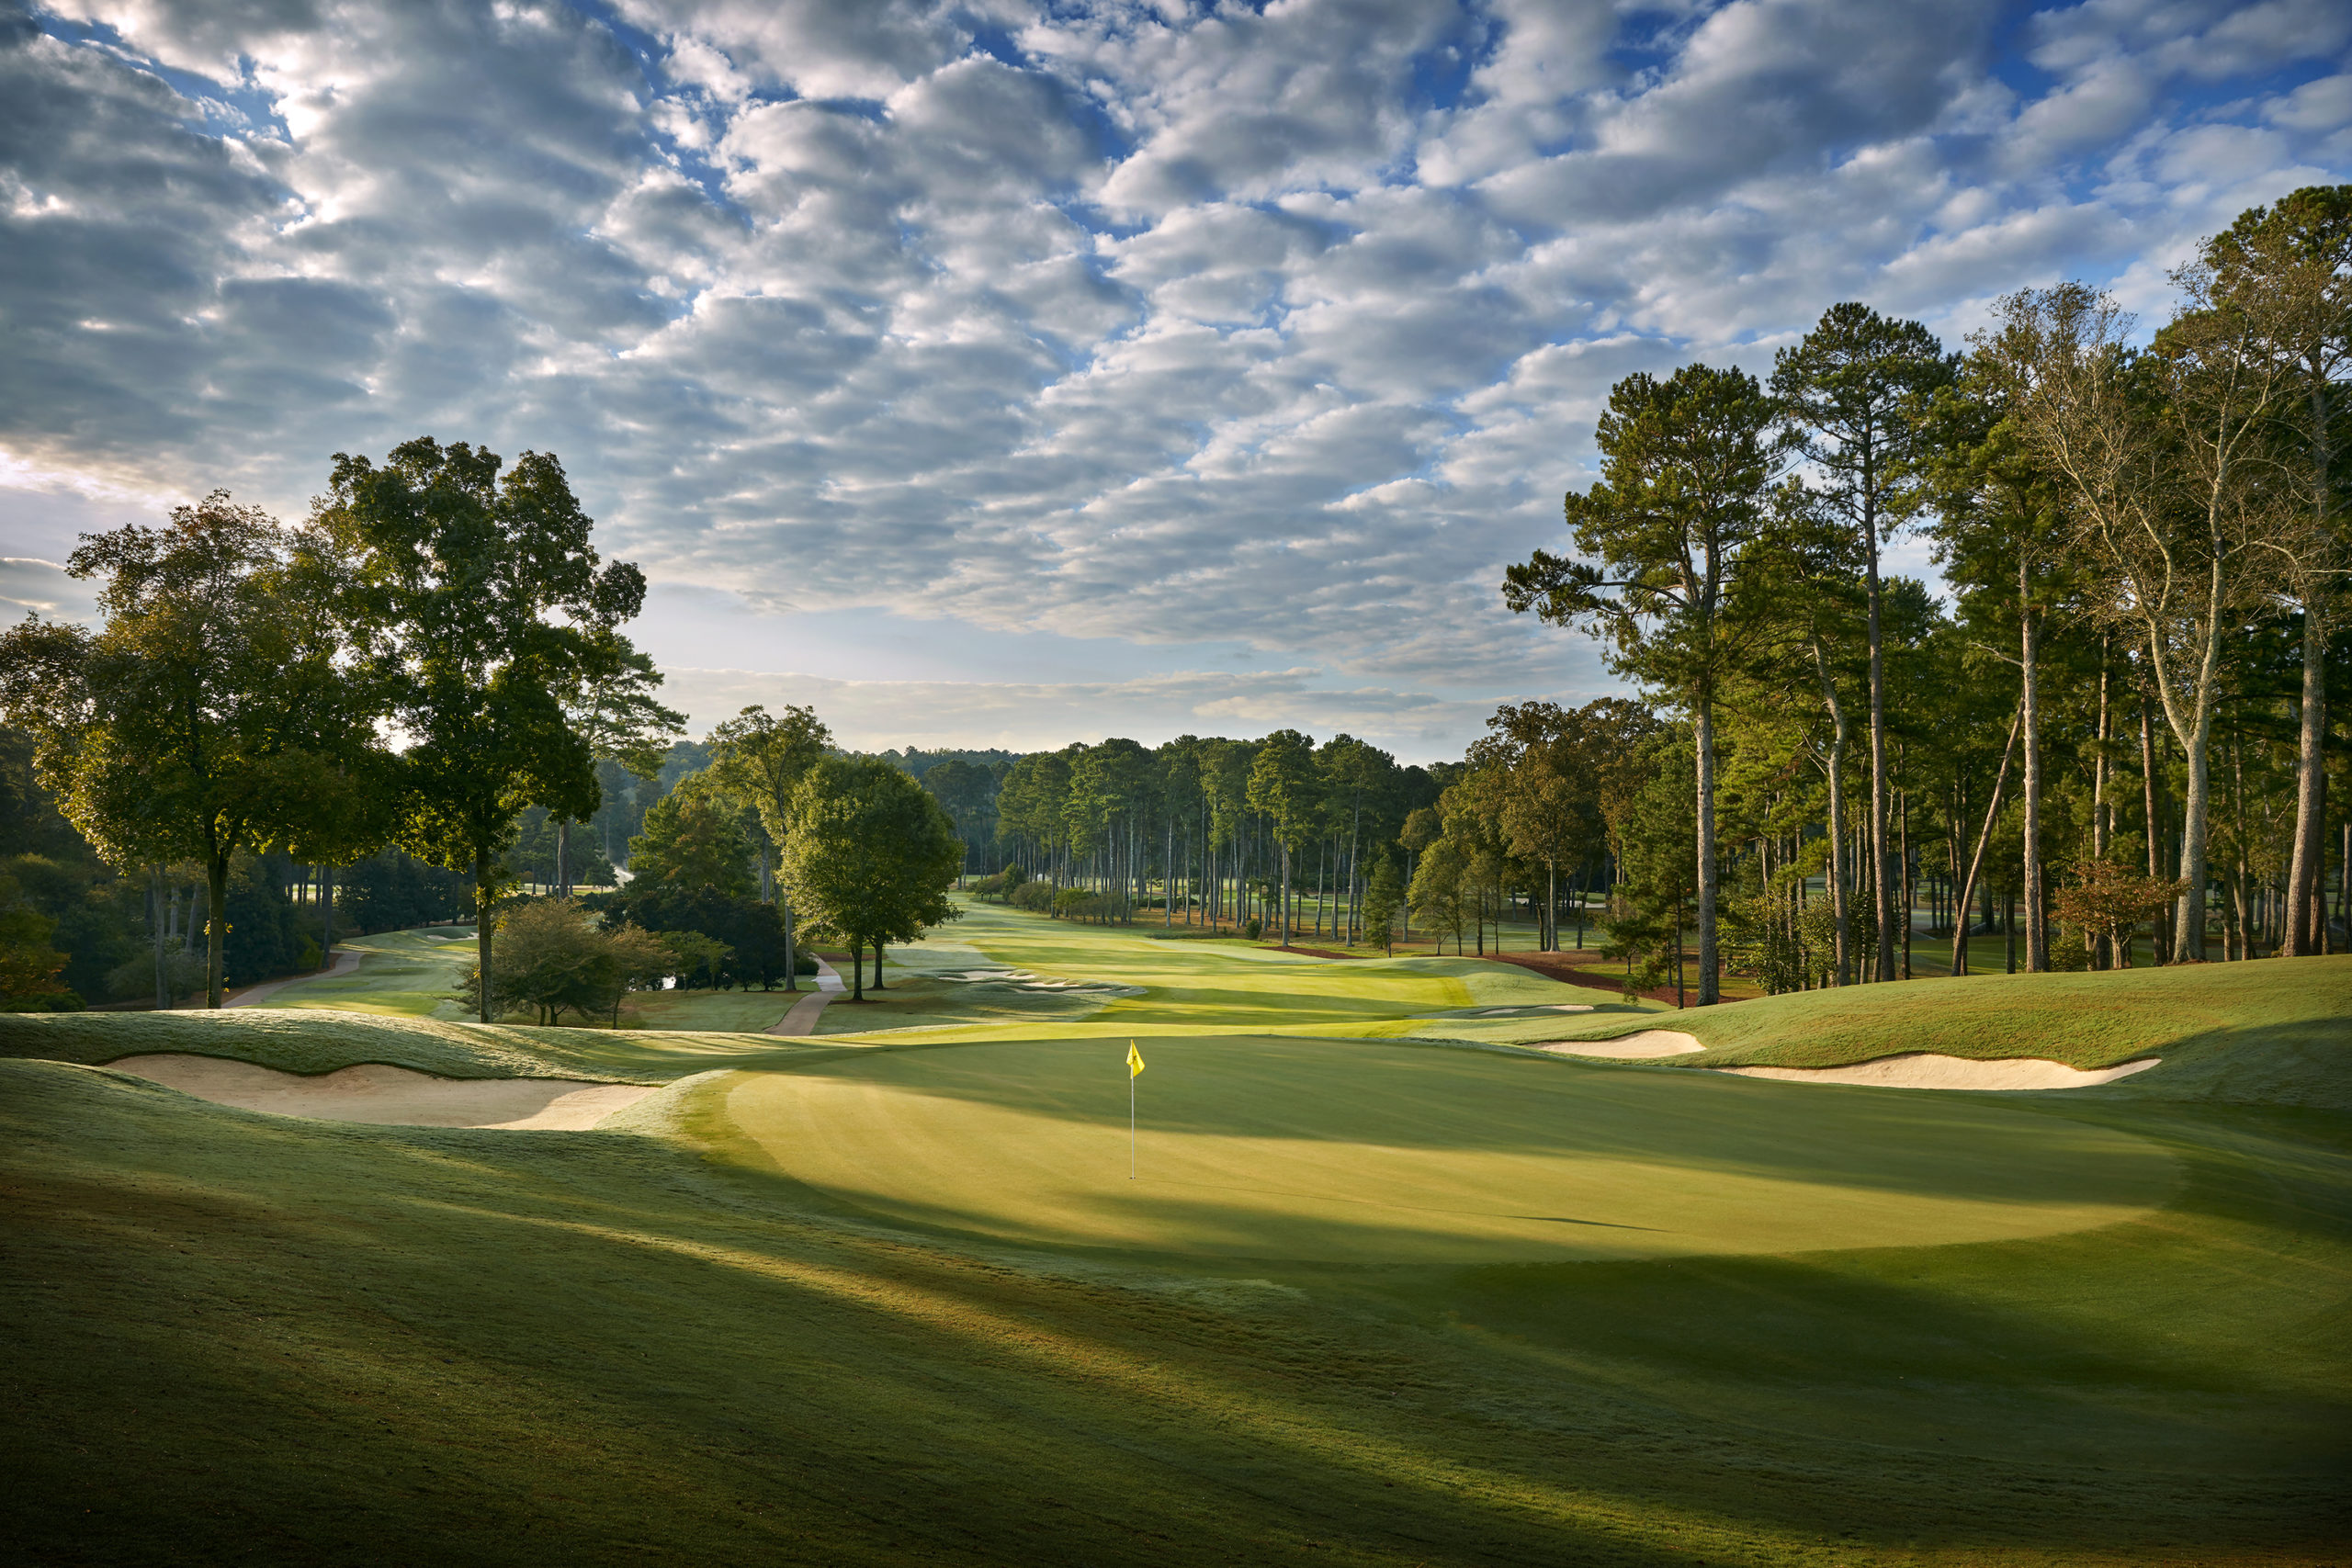 Golf-Course-1-scaled.jpg